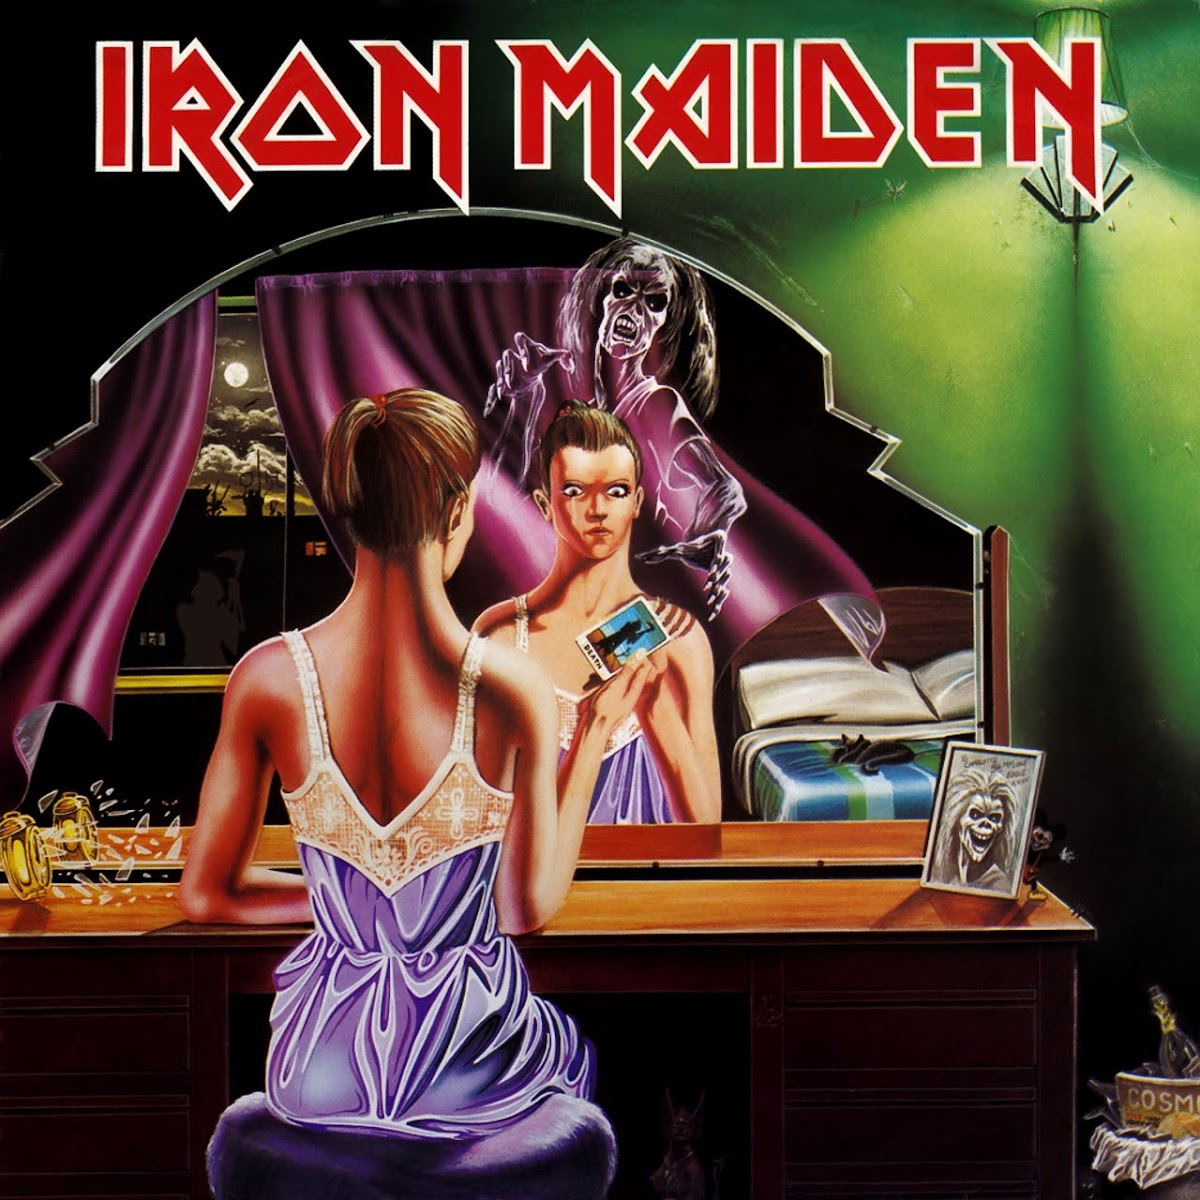 http://2.bp.blogspot.com/_grywaGIgycc/TG0bqO1-bzI/AAAAAAAAB-o/w_DD9iWuytI/s1200/single_iron_maiden_twilight_zone_ironmaidenwallpaper.com.jpg